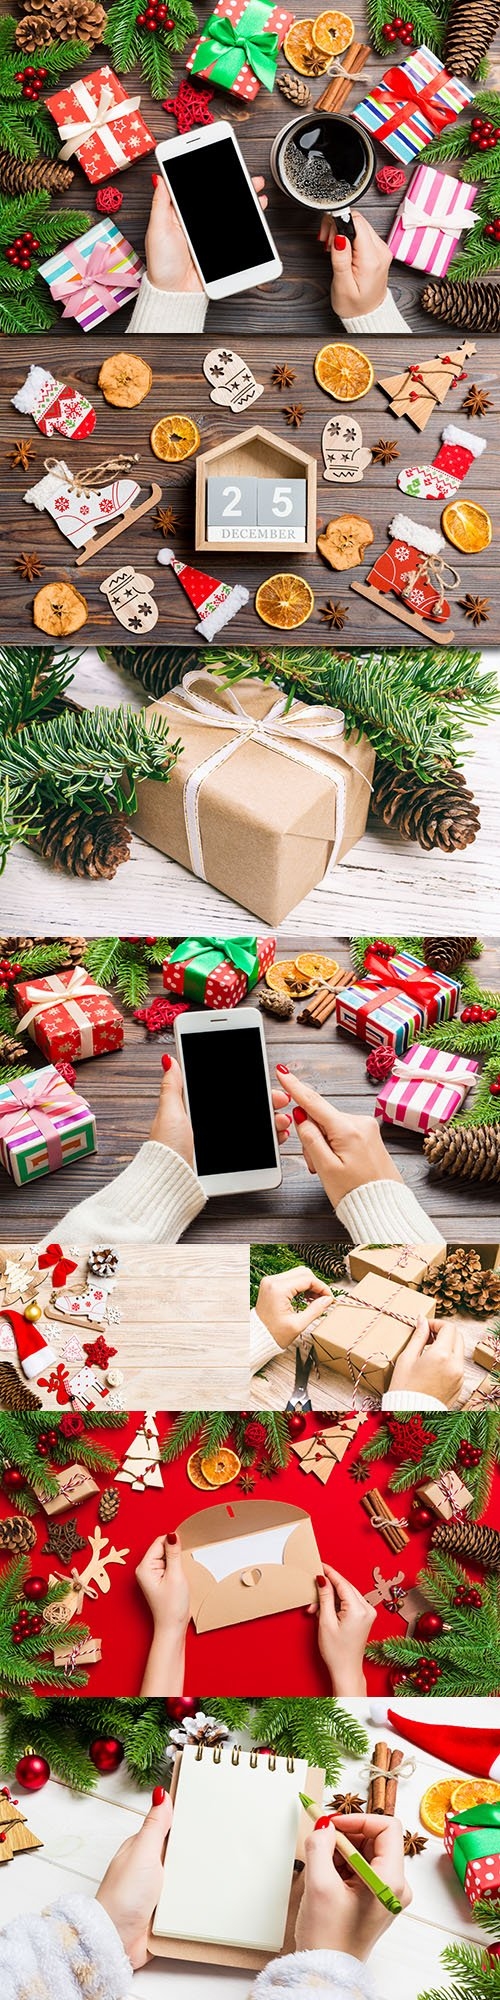 Christmas hand with gifts and iPhone decorative composition